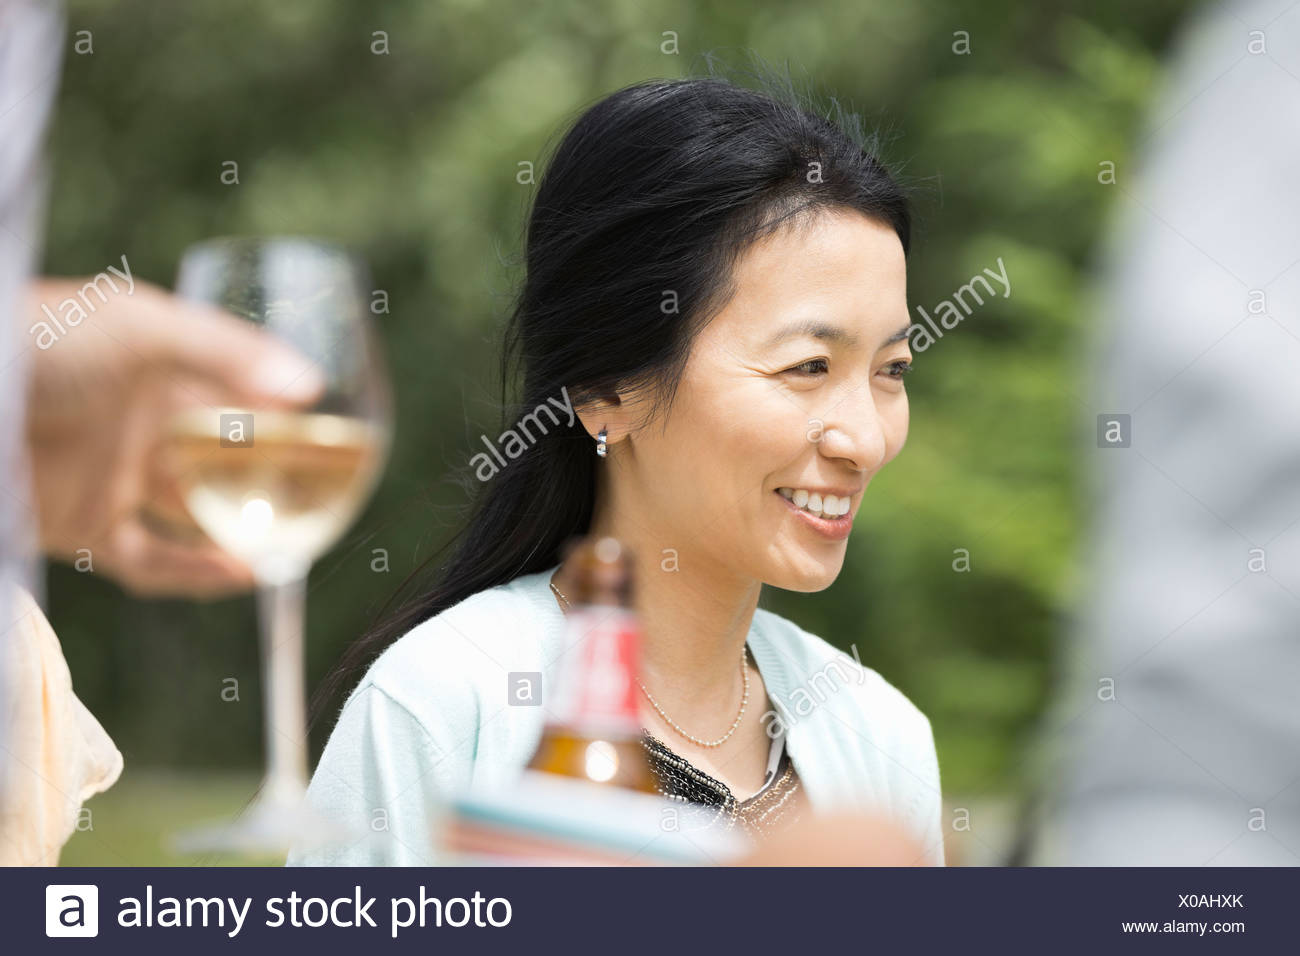 Mature woman smiling outdoors - Stock Image